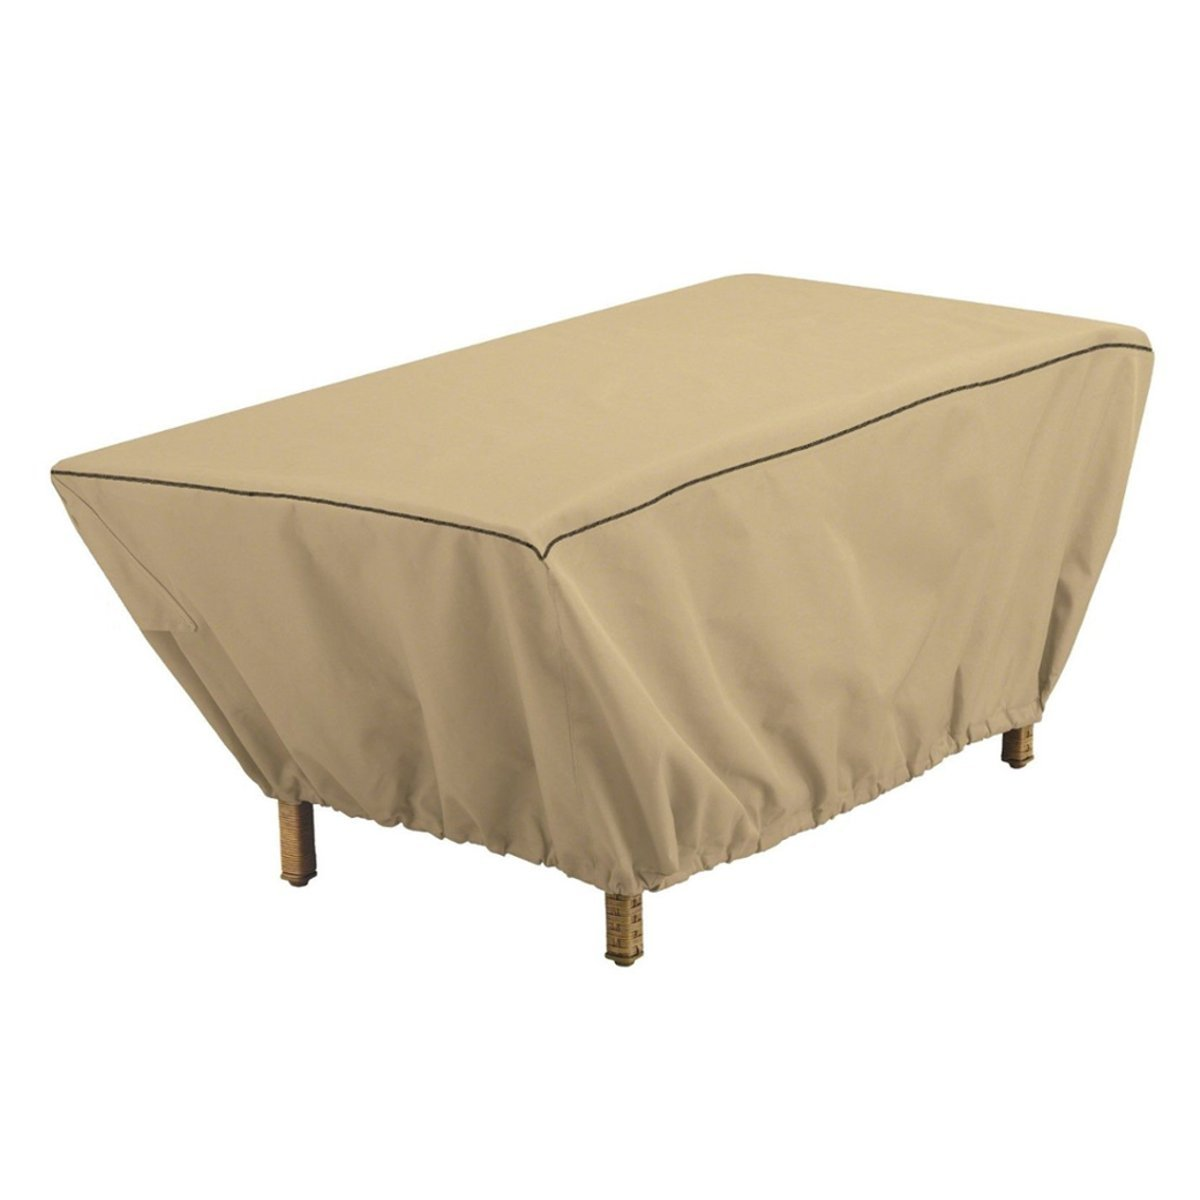 Waterproof Rectangular Patio Coffee Side Table Cover 48